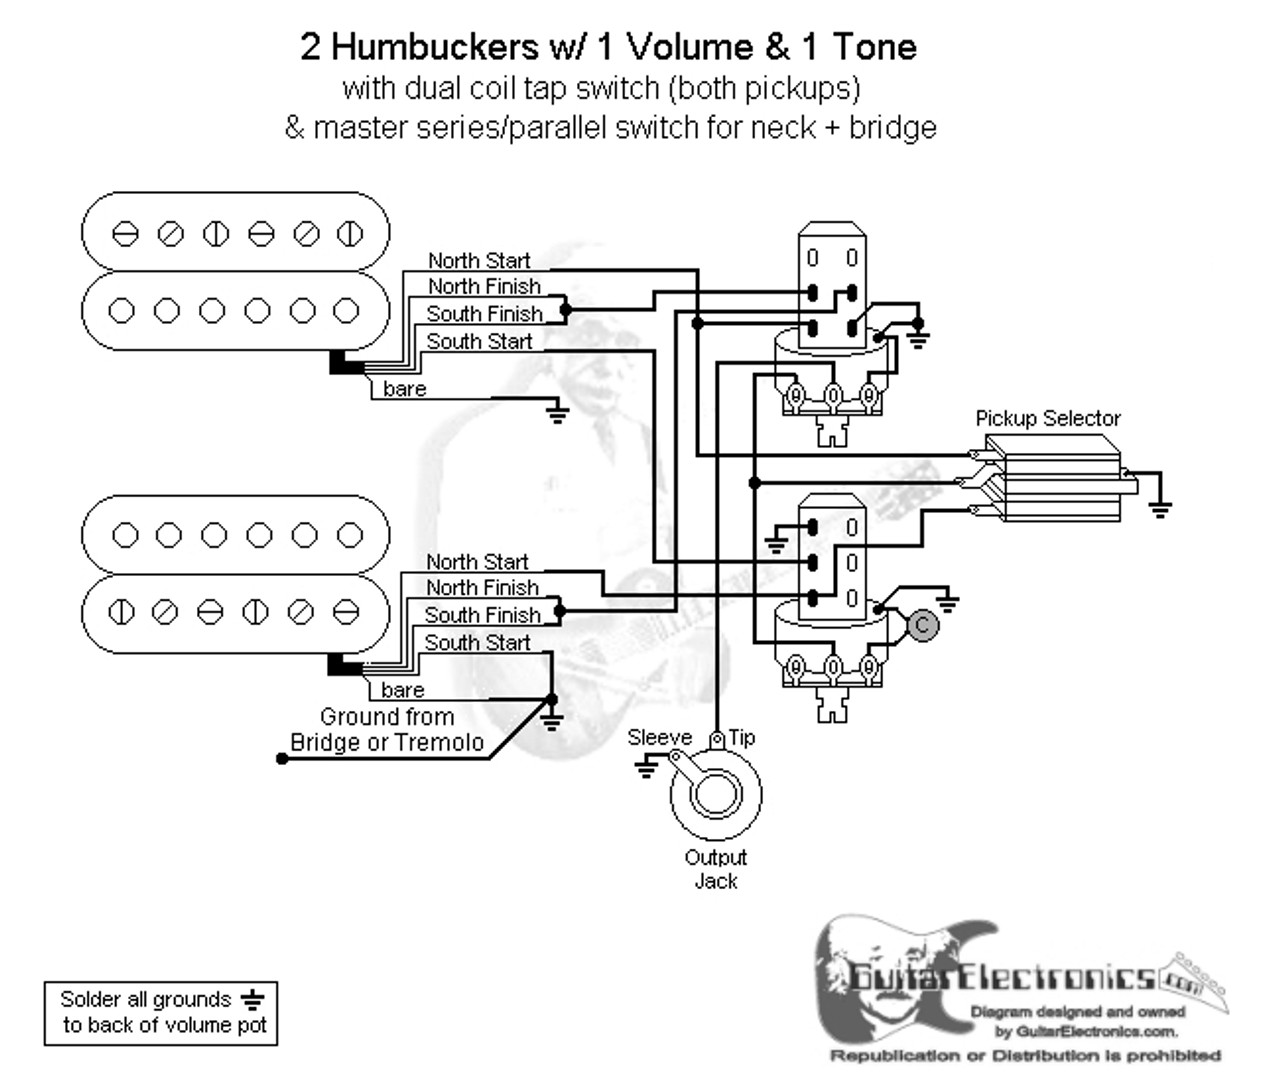 small resolution of 2 hbs 3 way toggle 1 vol 1 tone coil tap series parallel 2 humbucker 1 vol 1 wiring diagrams